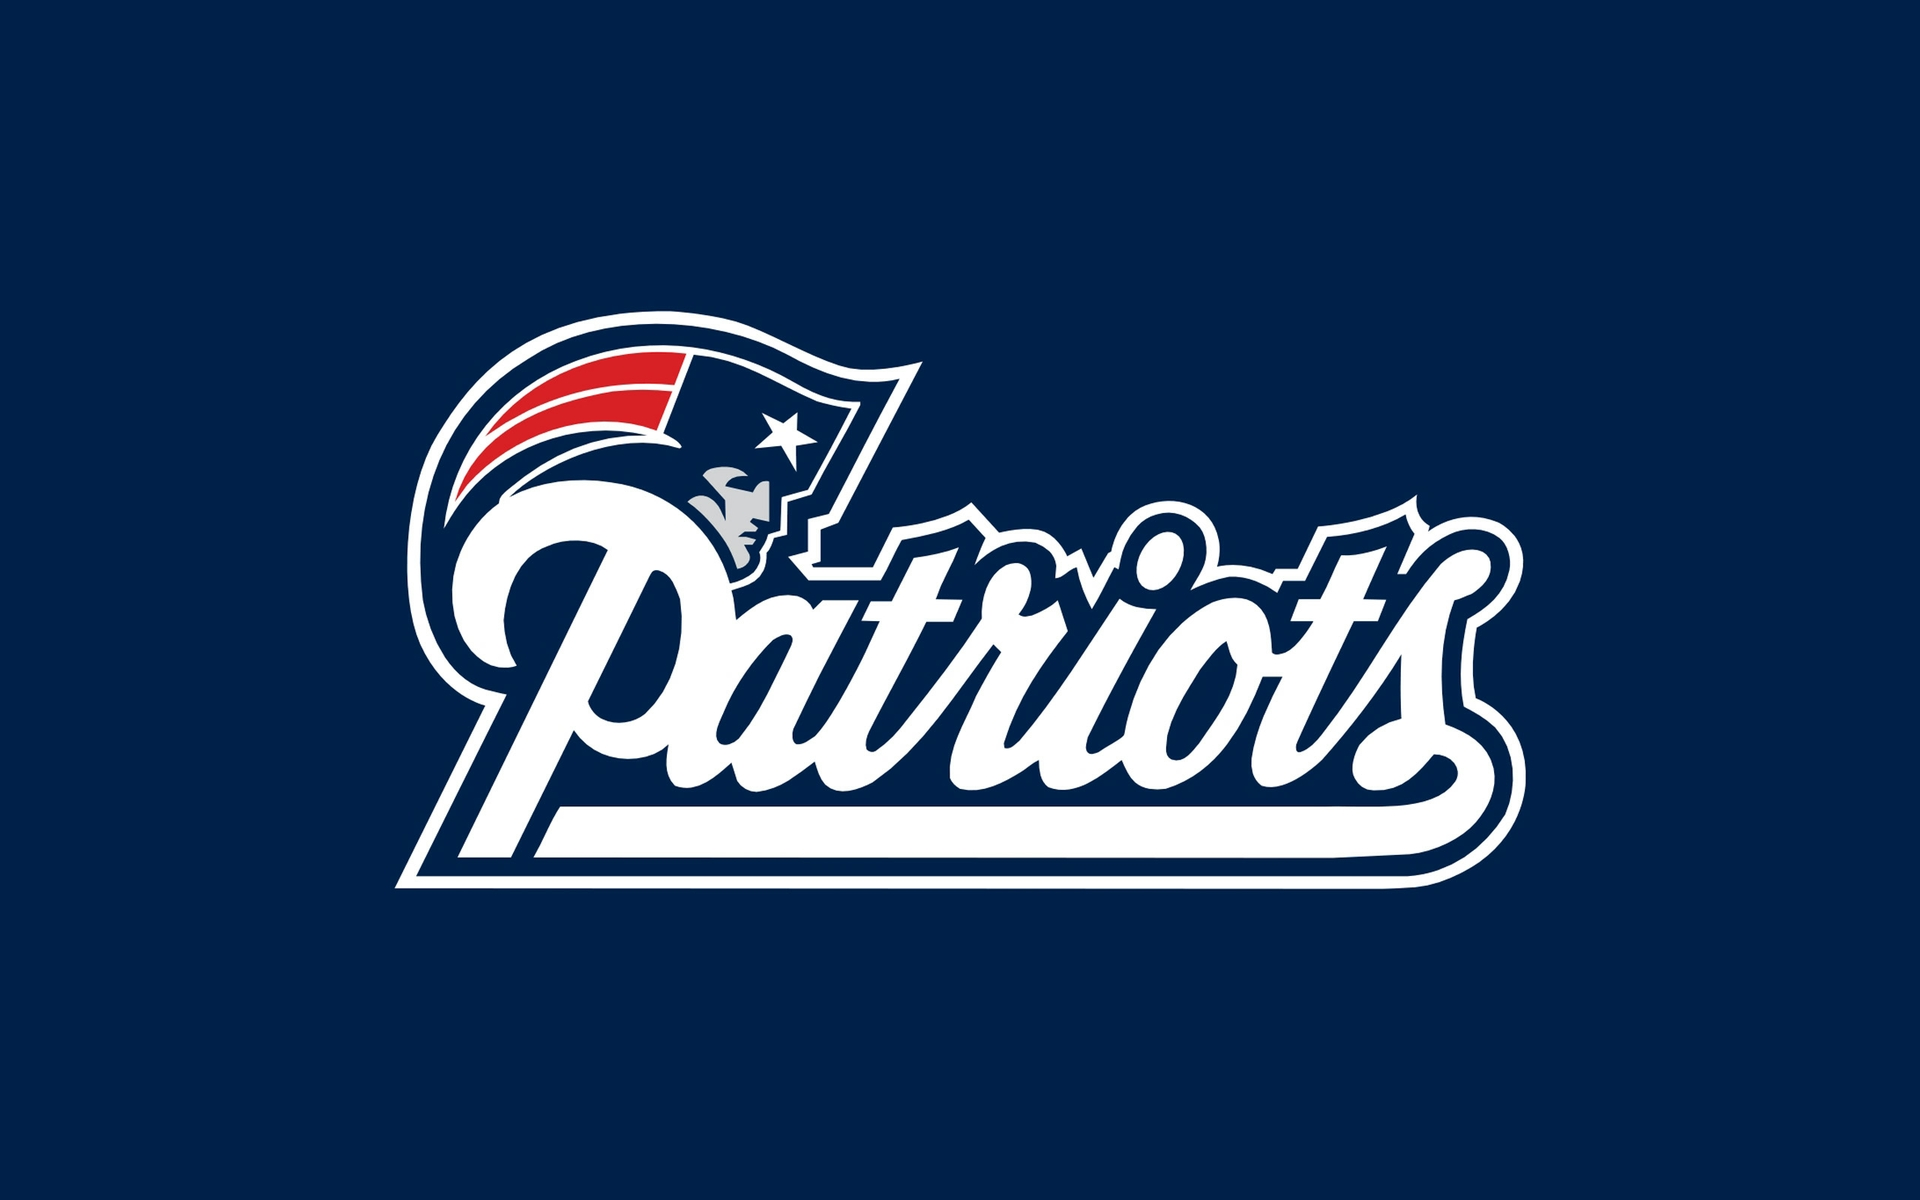 More New England Patriots wallpaper wallpapers